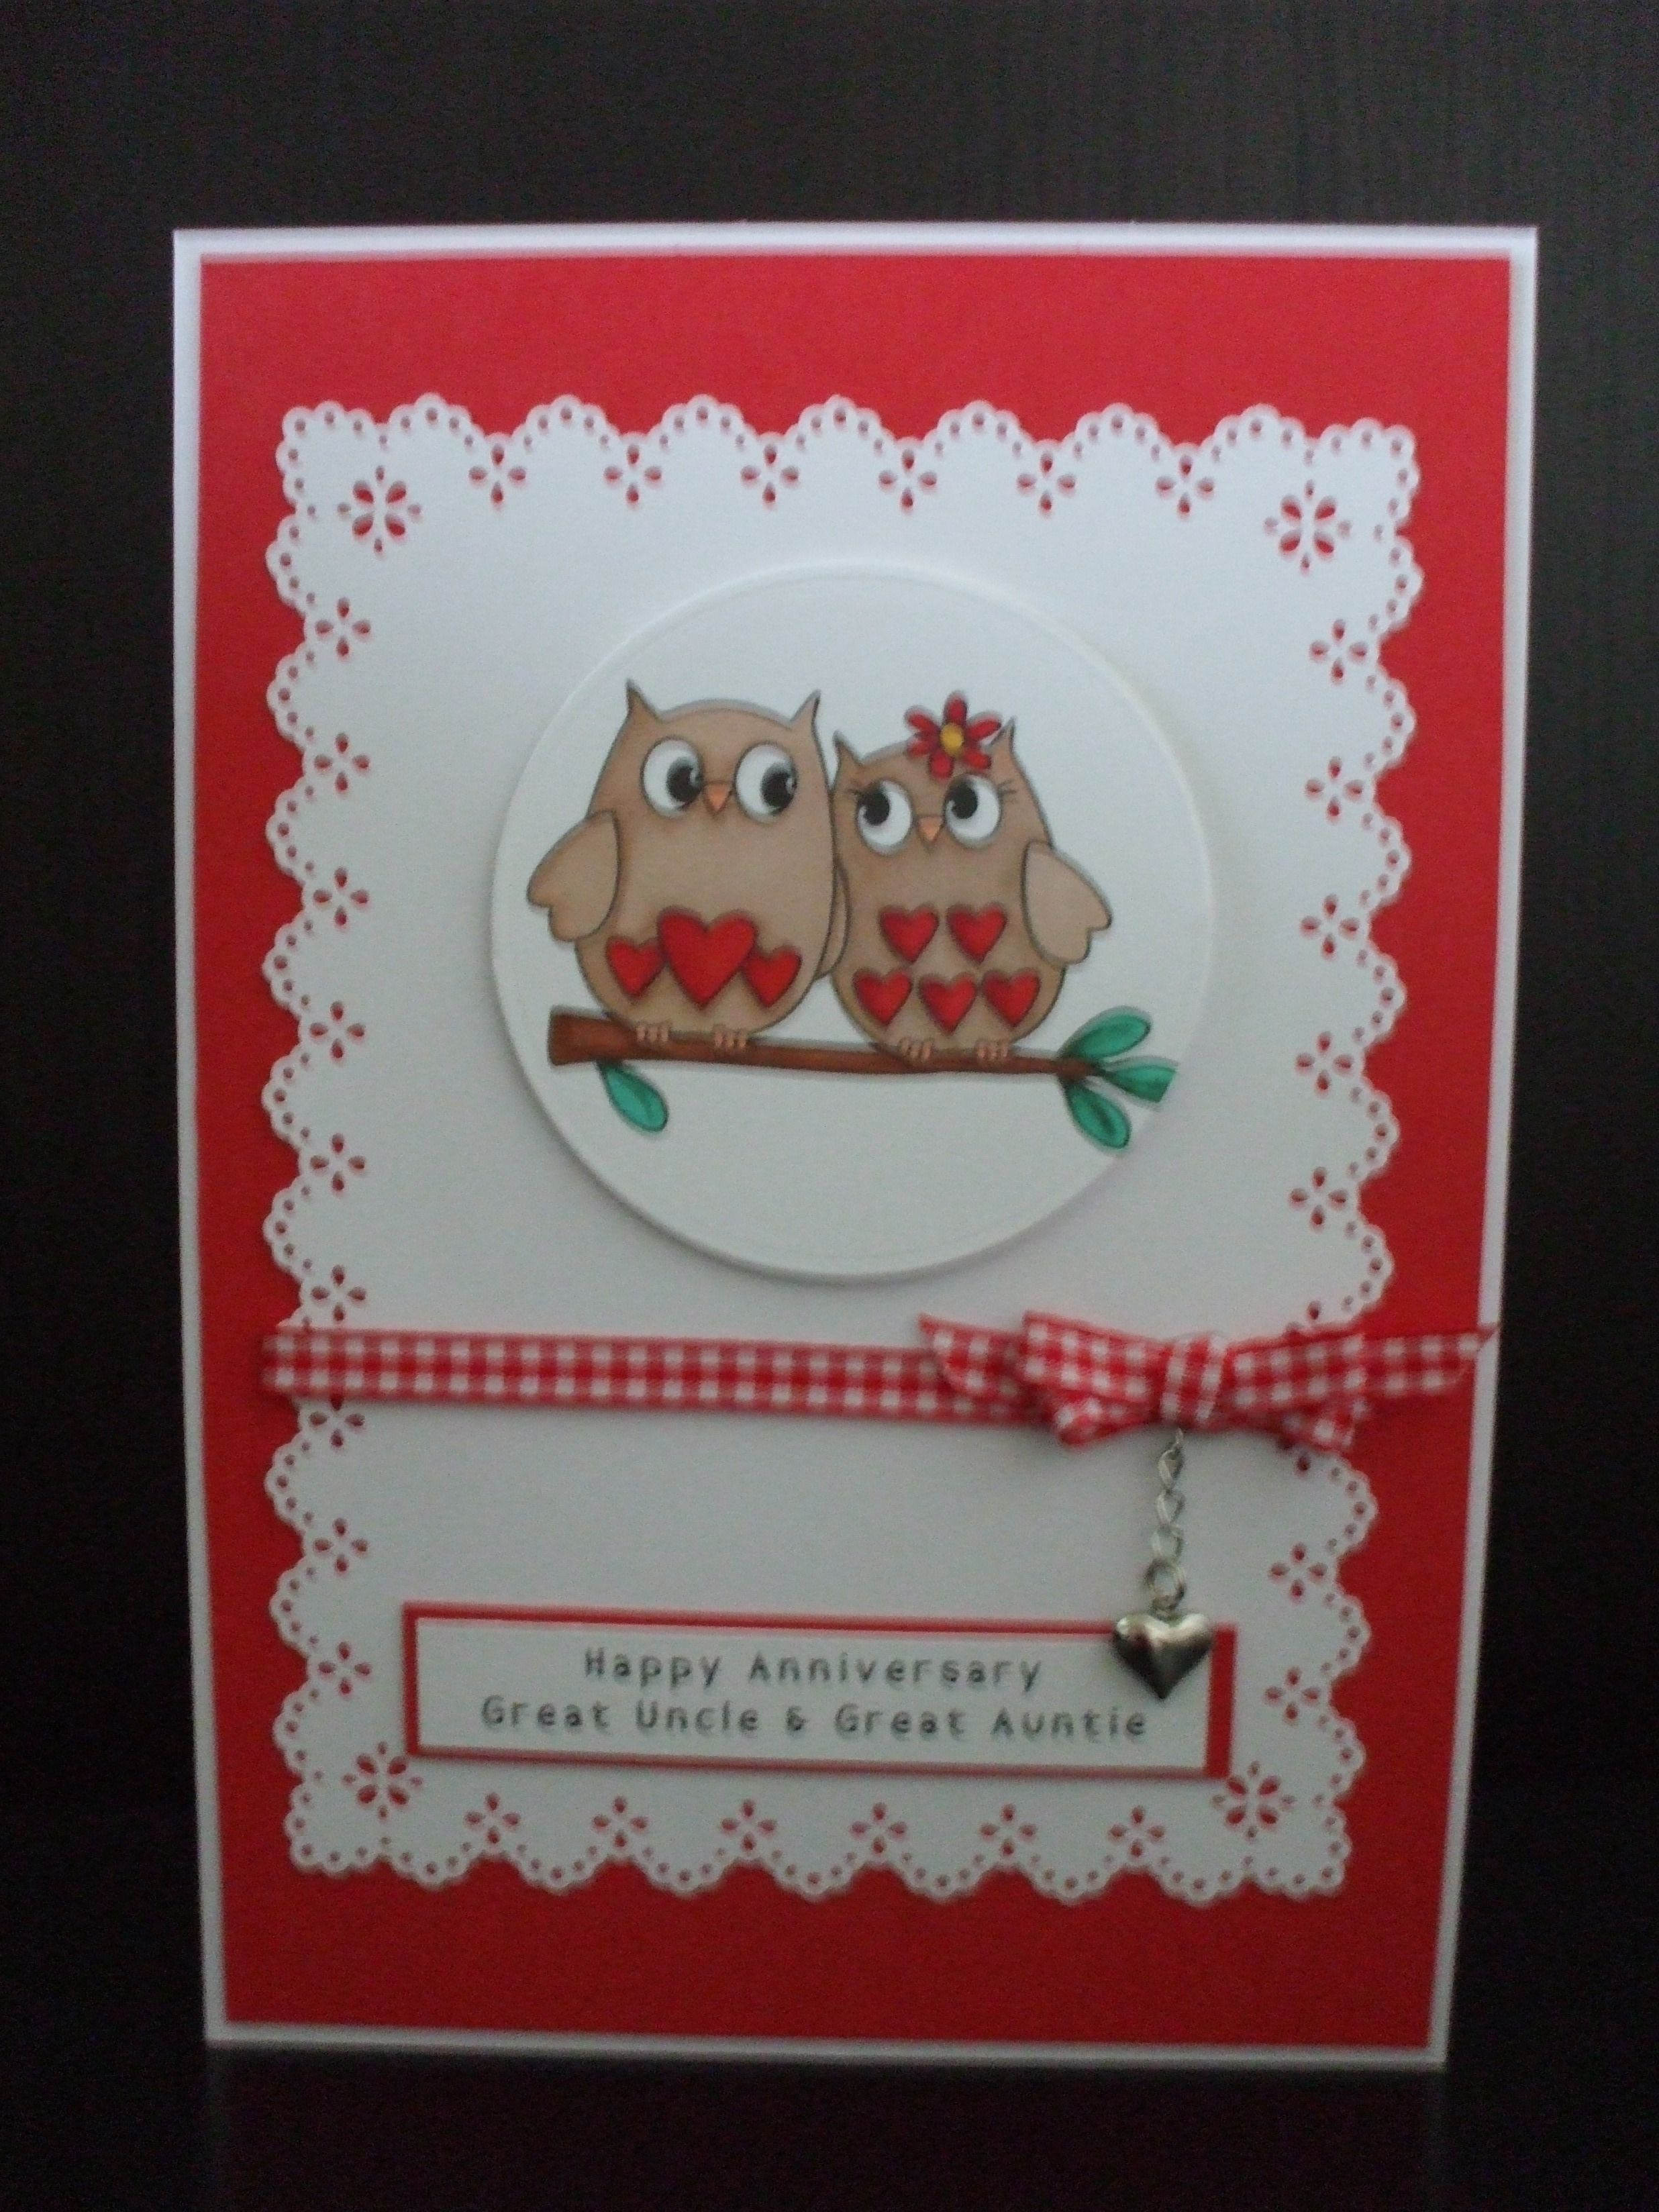 Making Anniversary Cards Ideas Part - 30: Handmade Anniversary Card, Digistamp Boutique Image - Love Owls